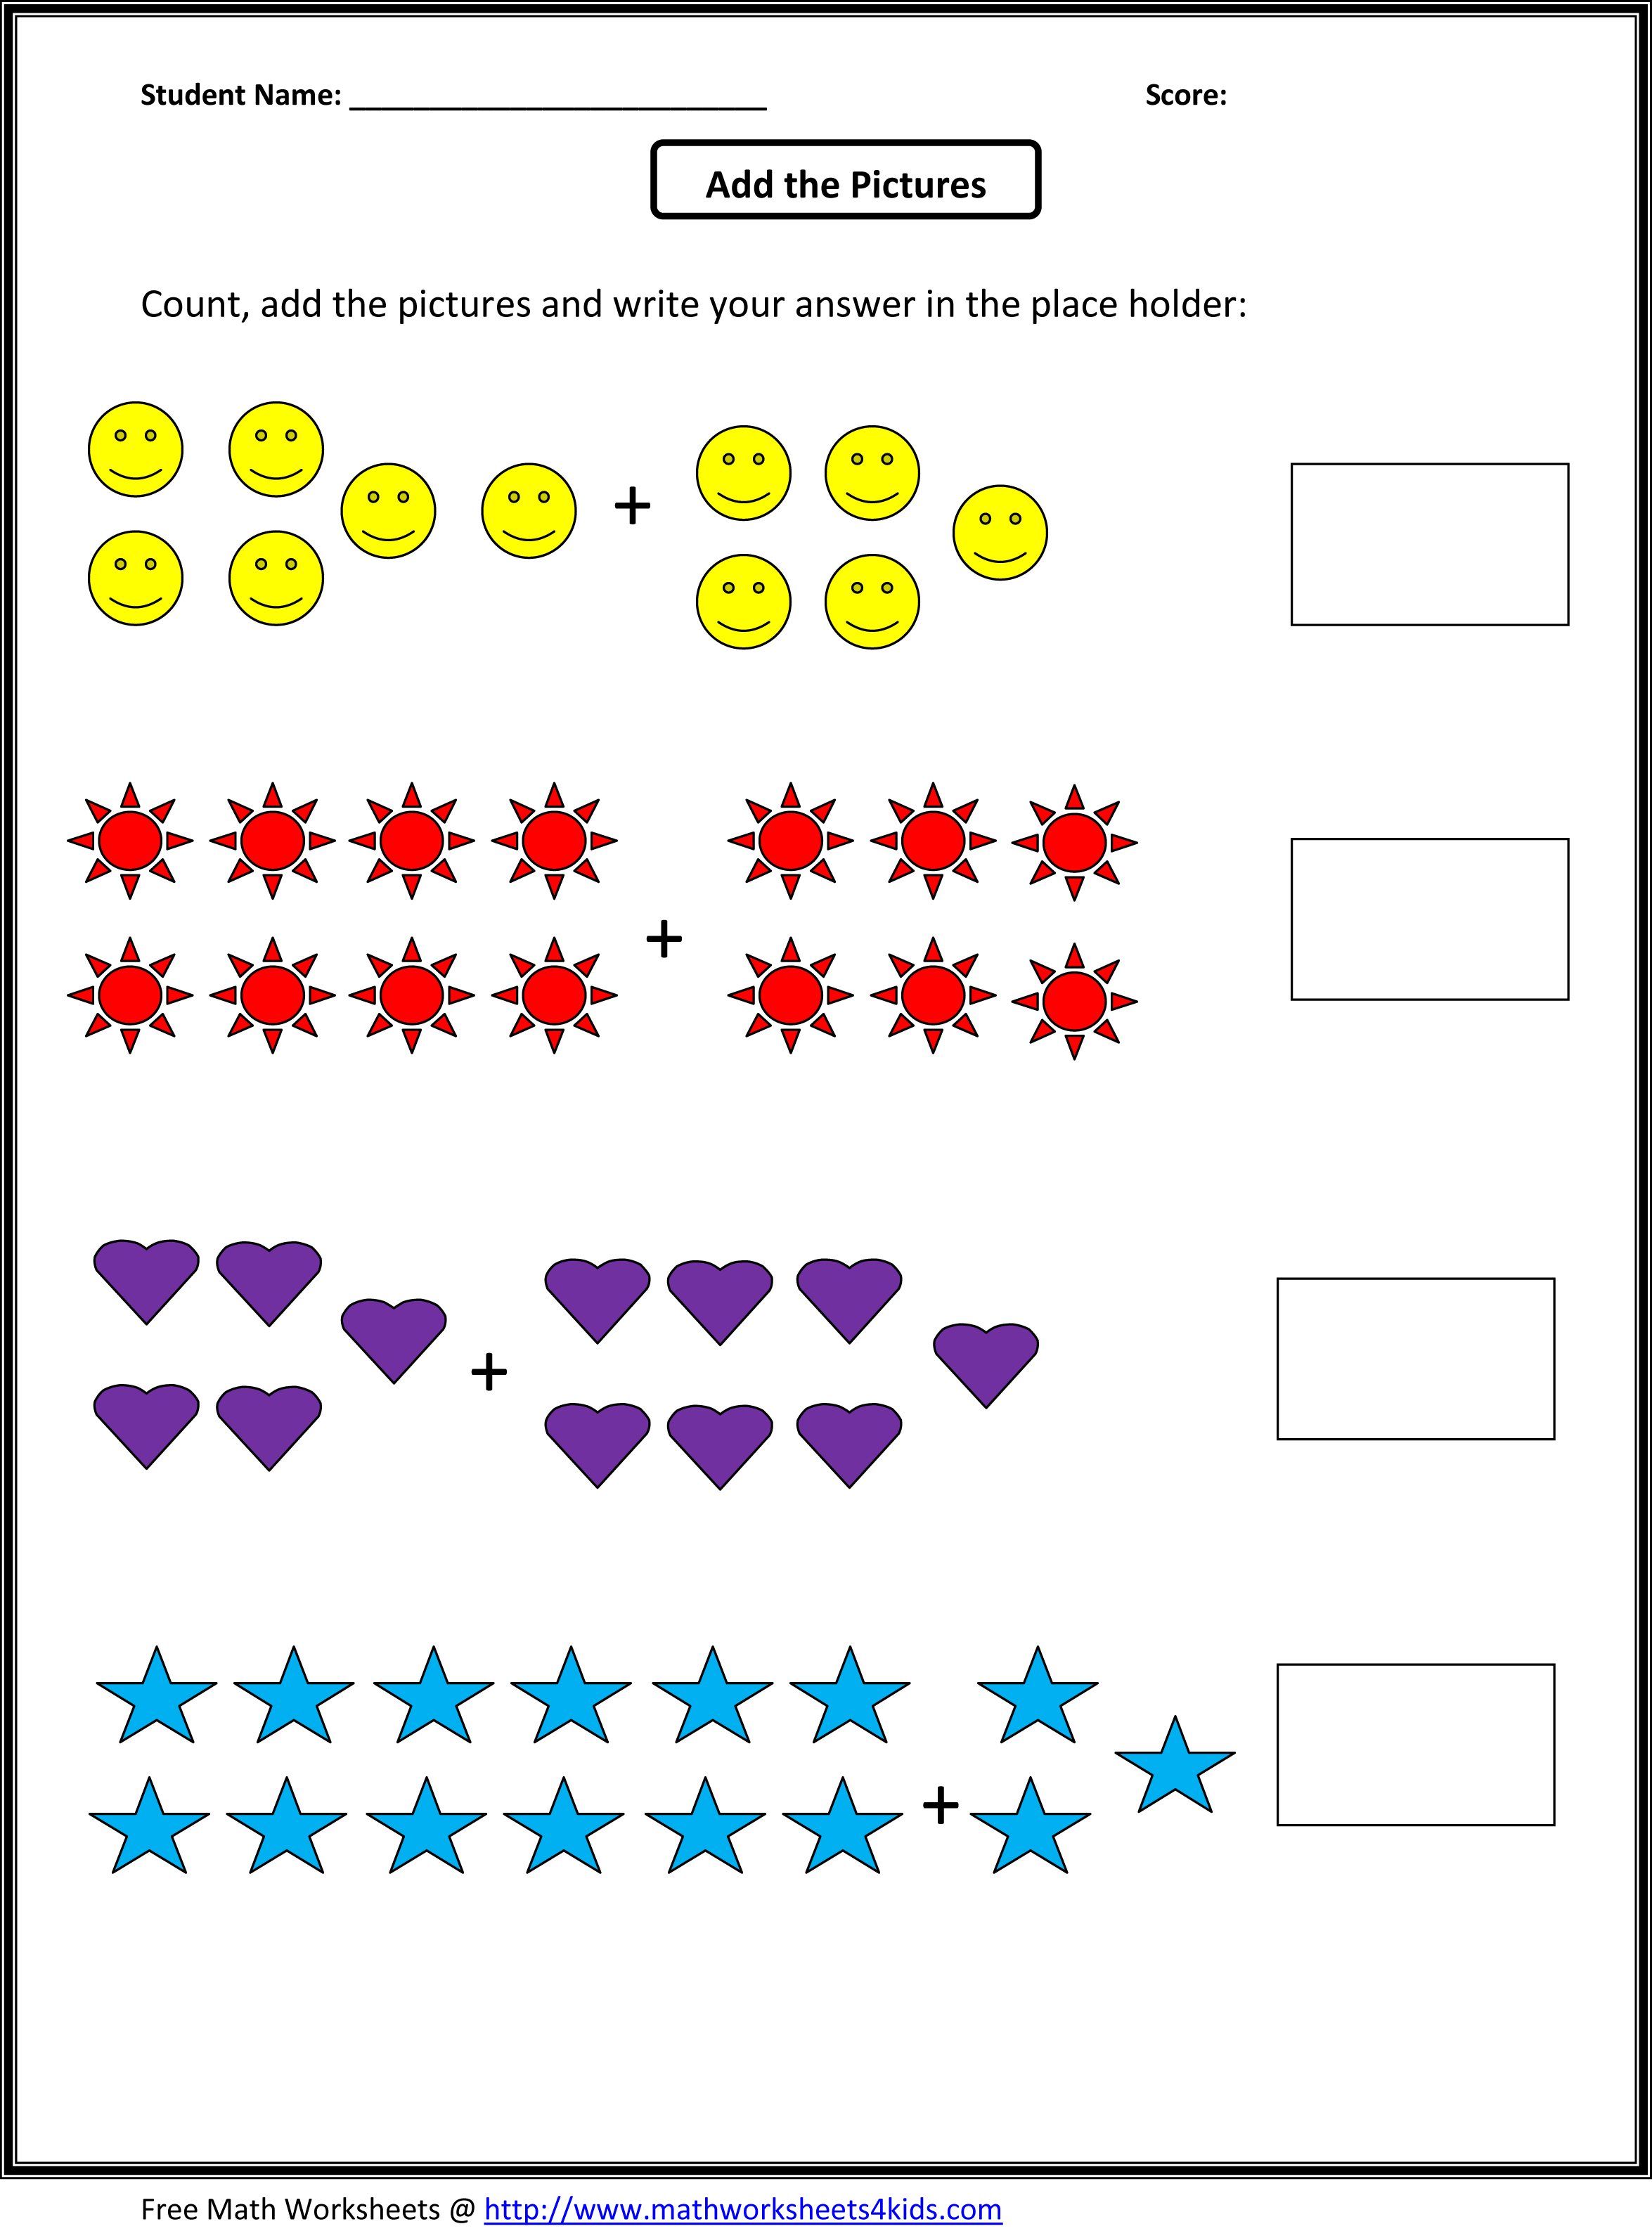 Proatmealus  Outstanding Grade  Maths Worksheet  Reocurent With Exquisite Math Worksheets For St Grade Free  Reocurent With Attractive Pronoun Antecedent Worksheets Also Halloween Worksheets For Rd Grade In Addition Character And Setting Worksheet And Algebraic Transformations Worksheet As Well As Th Grade Math Distributive Property Worksheets Additionally Multiplication Worksheets  From Reocurentcom With Proatmealus  Exquisite Grade  Maths Worksheet  Reocurent With Attractive Math Worksheets For St Grade Free  Reocurent And Outstanding Pronoun Antecedent Worksheets Also Halloween Worksheets For Rd Grade In Addition Character And Setting Worksheet From Reocurentcom